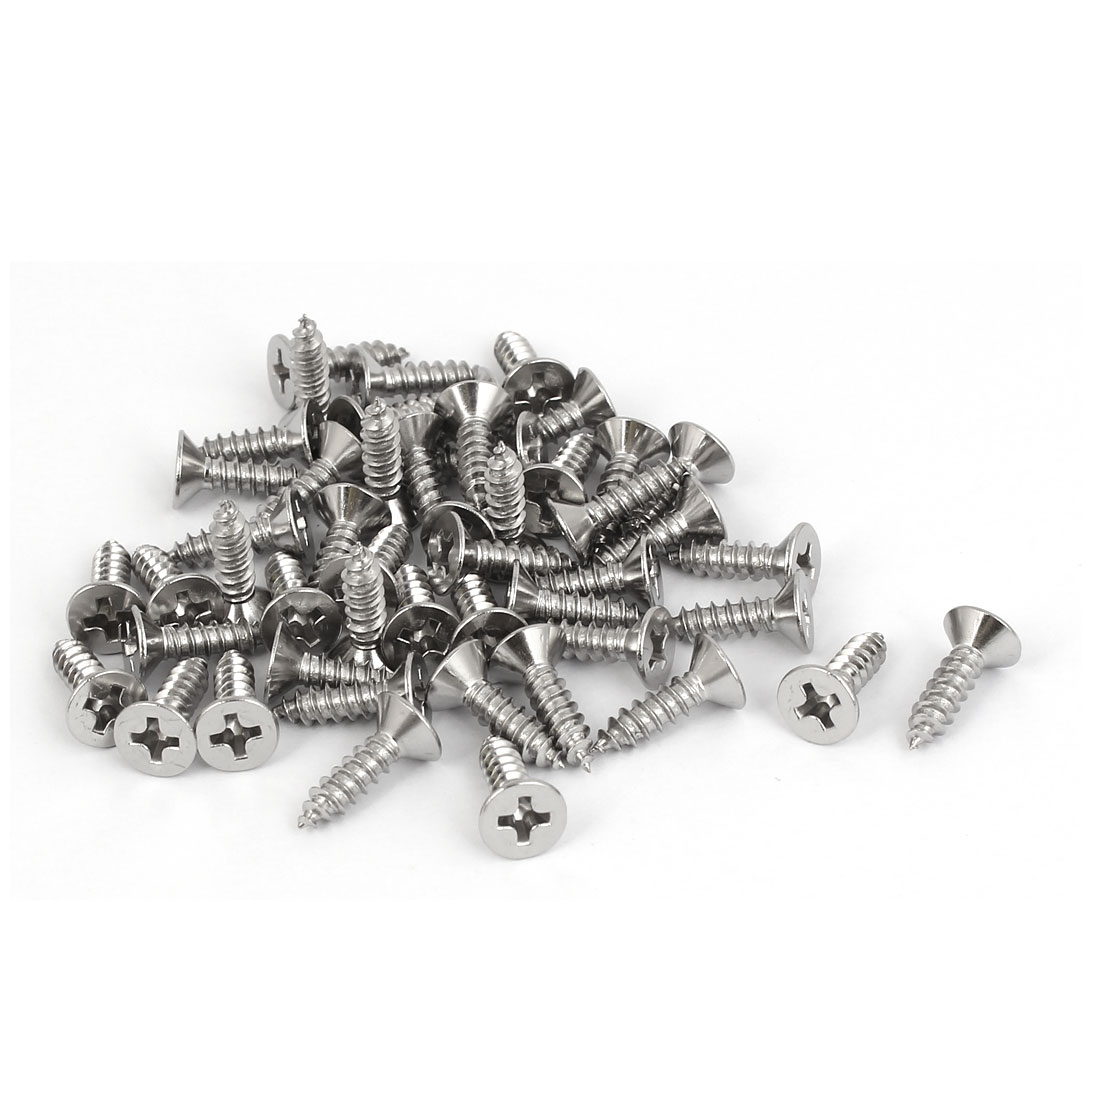 M3.5x13mm 316 Stainless Steel Flat Head Phillips Self Tapping Screws Bolts 50pcs